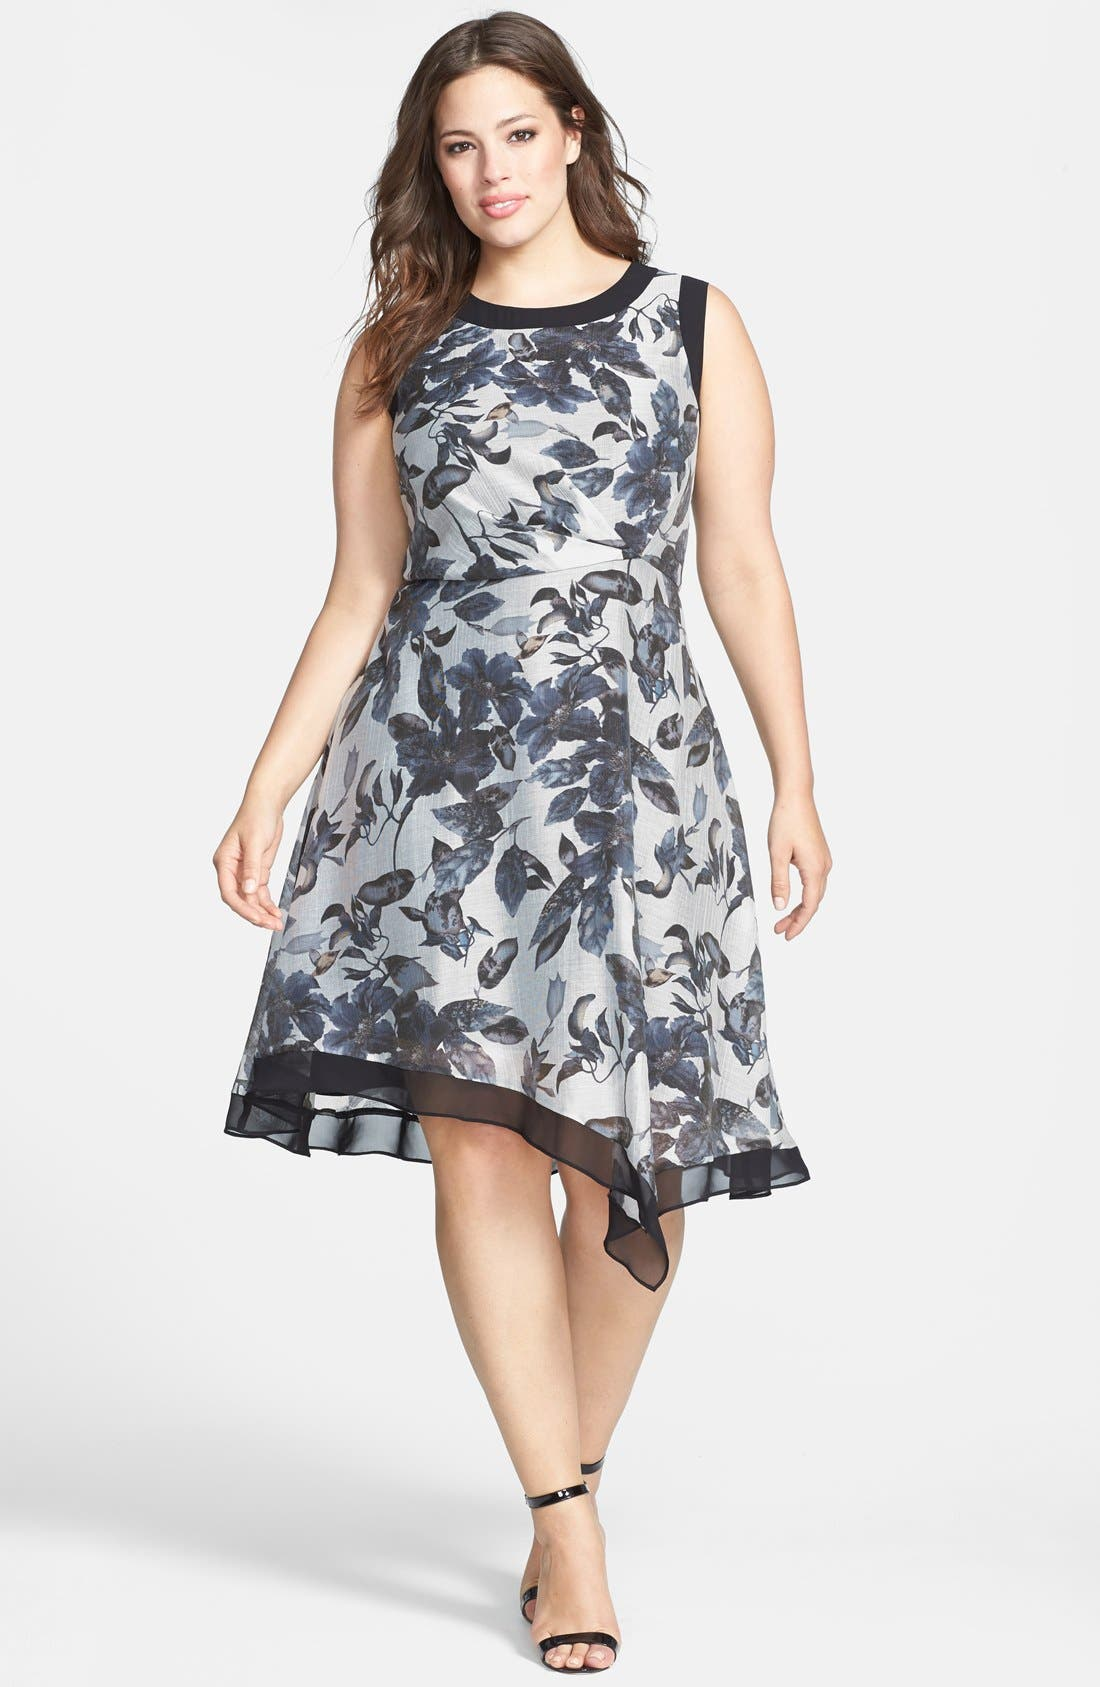 Alternate Image 1 Selected - Adrianna Papell Contrast Trim Print Sleeveless Dress (Plus Size)